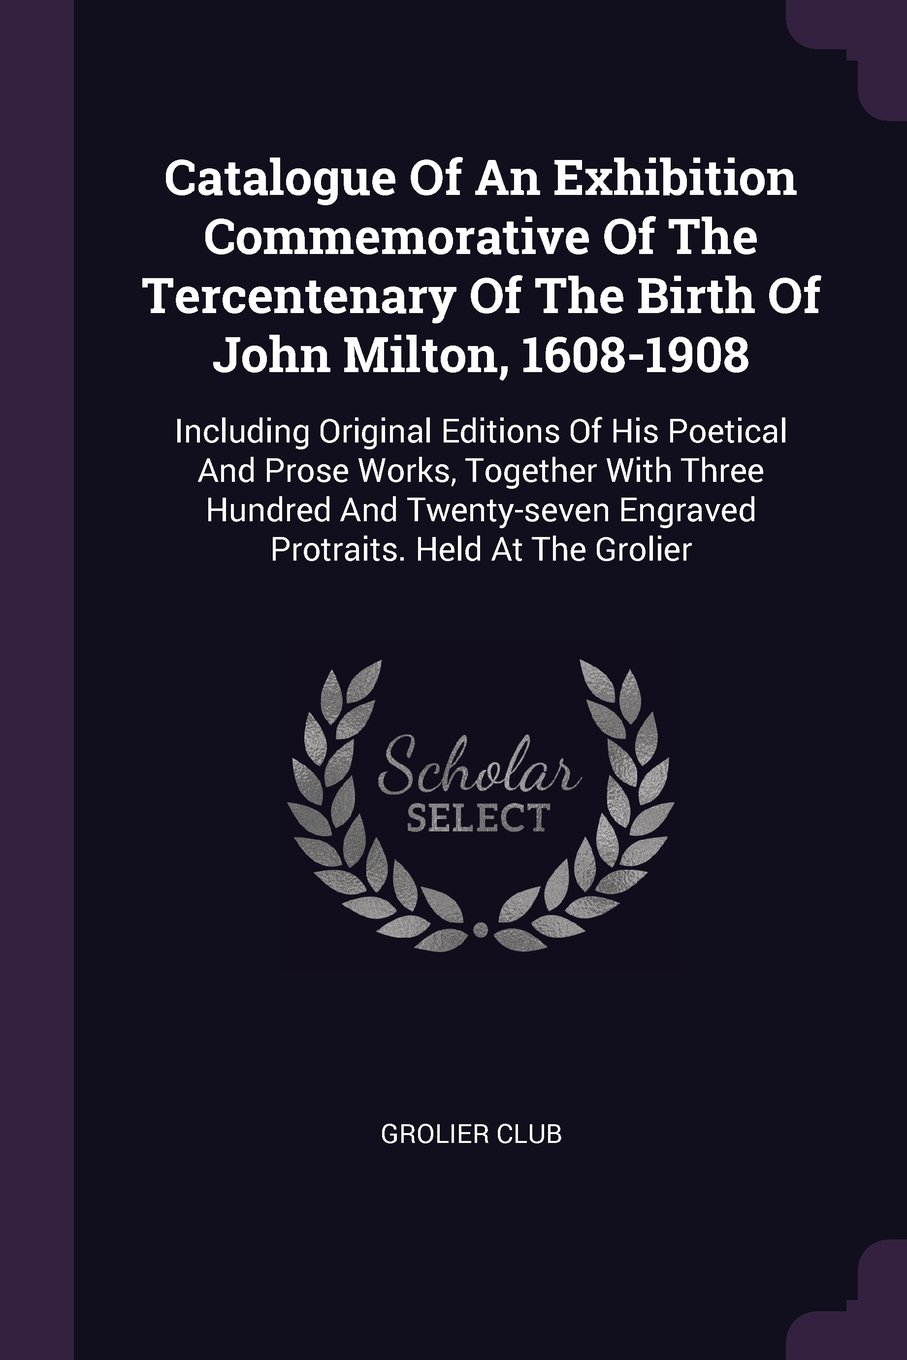 Download Catalogue Of An Exhibition Commemorative Of The Tercentenary Of The Birth Of John Milton, 1608-1908: Including Original Editions Of His Poetical And ... Engraved Protraits. Held At The Grolier ebook